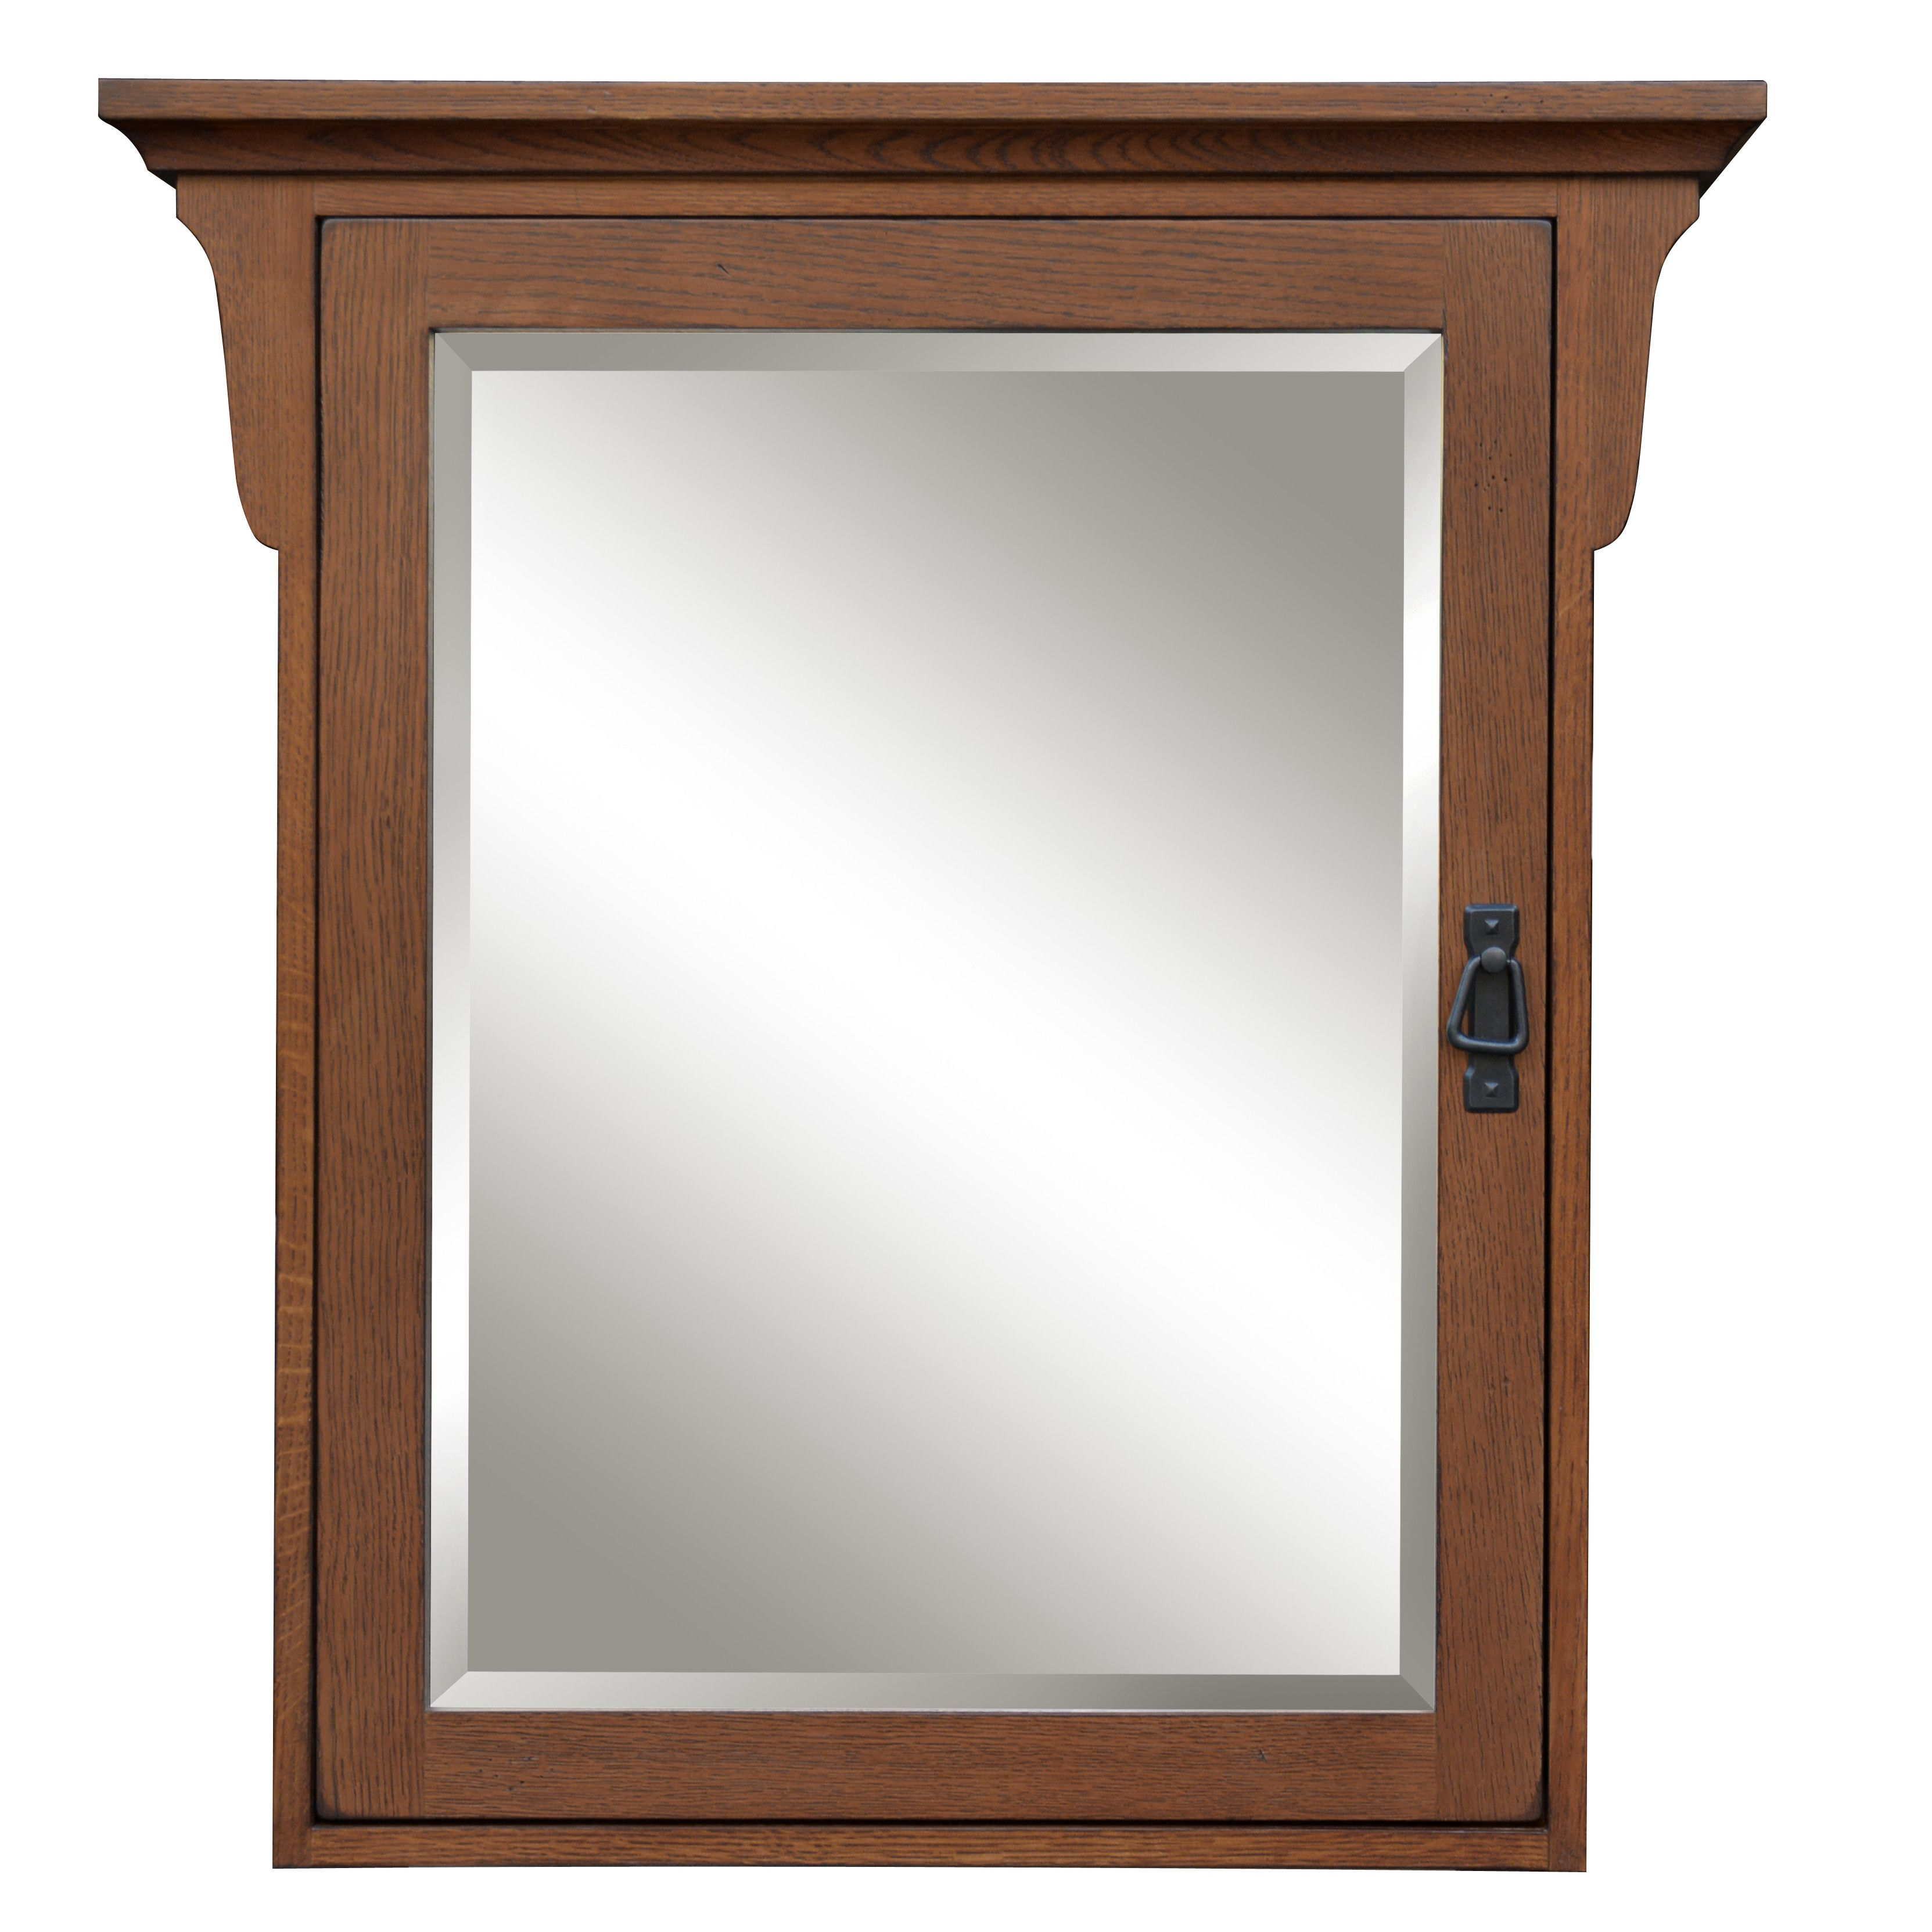 Taryn 20 X 24 Surface Mount Framed Medicine Cabinet With 1